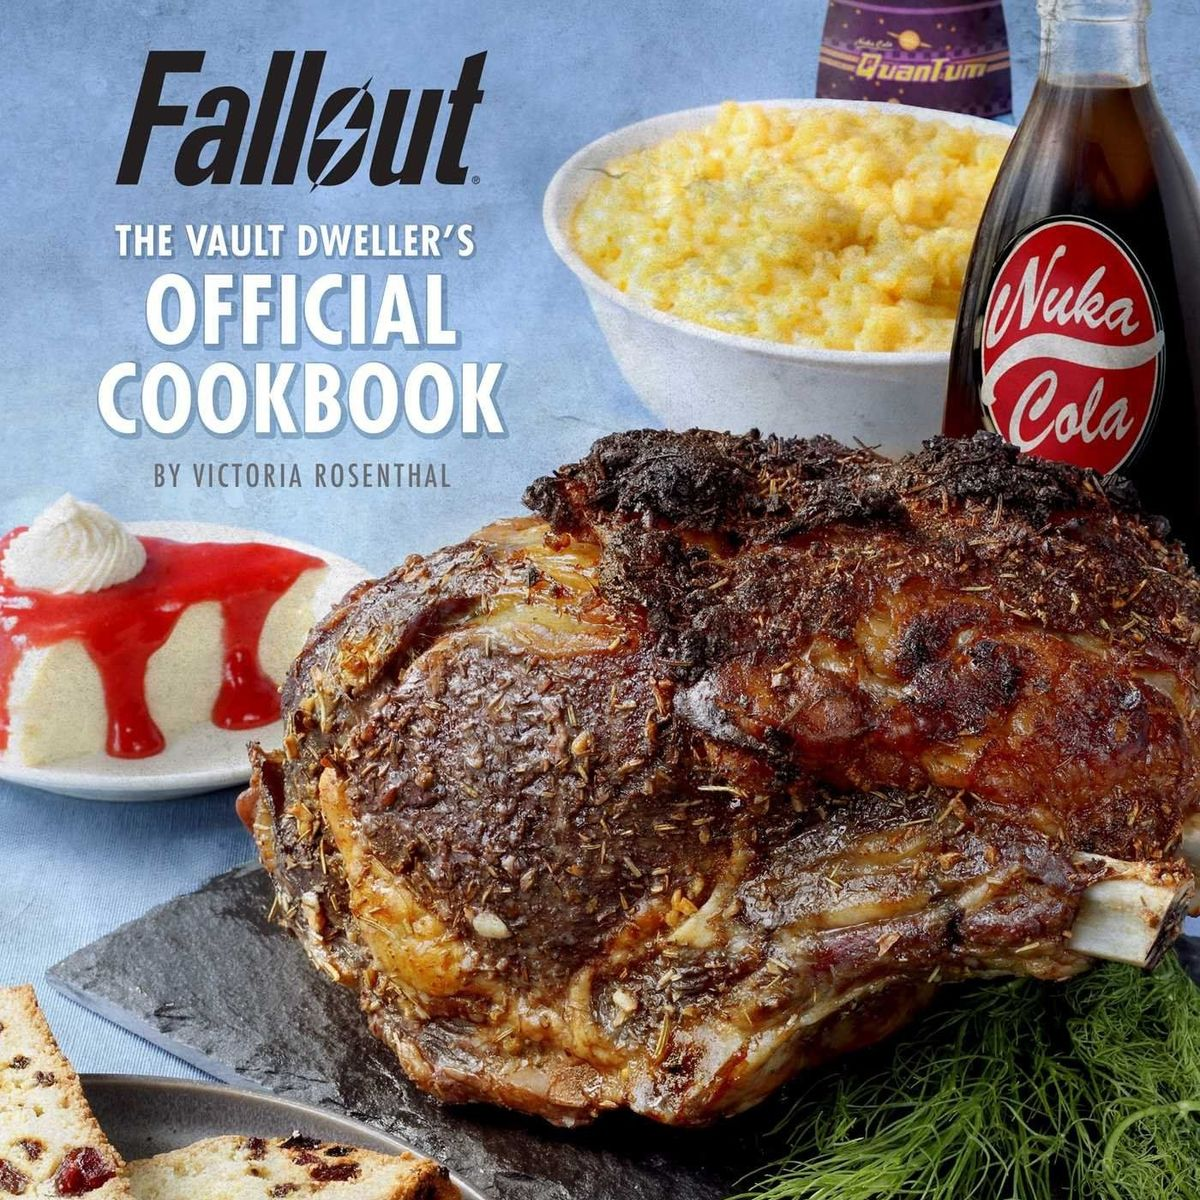 Fallout Cookbook cover